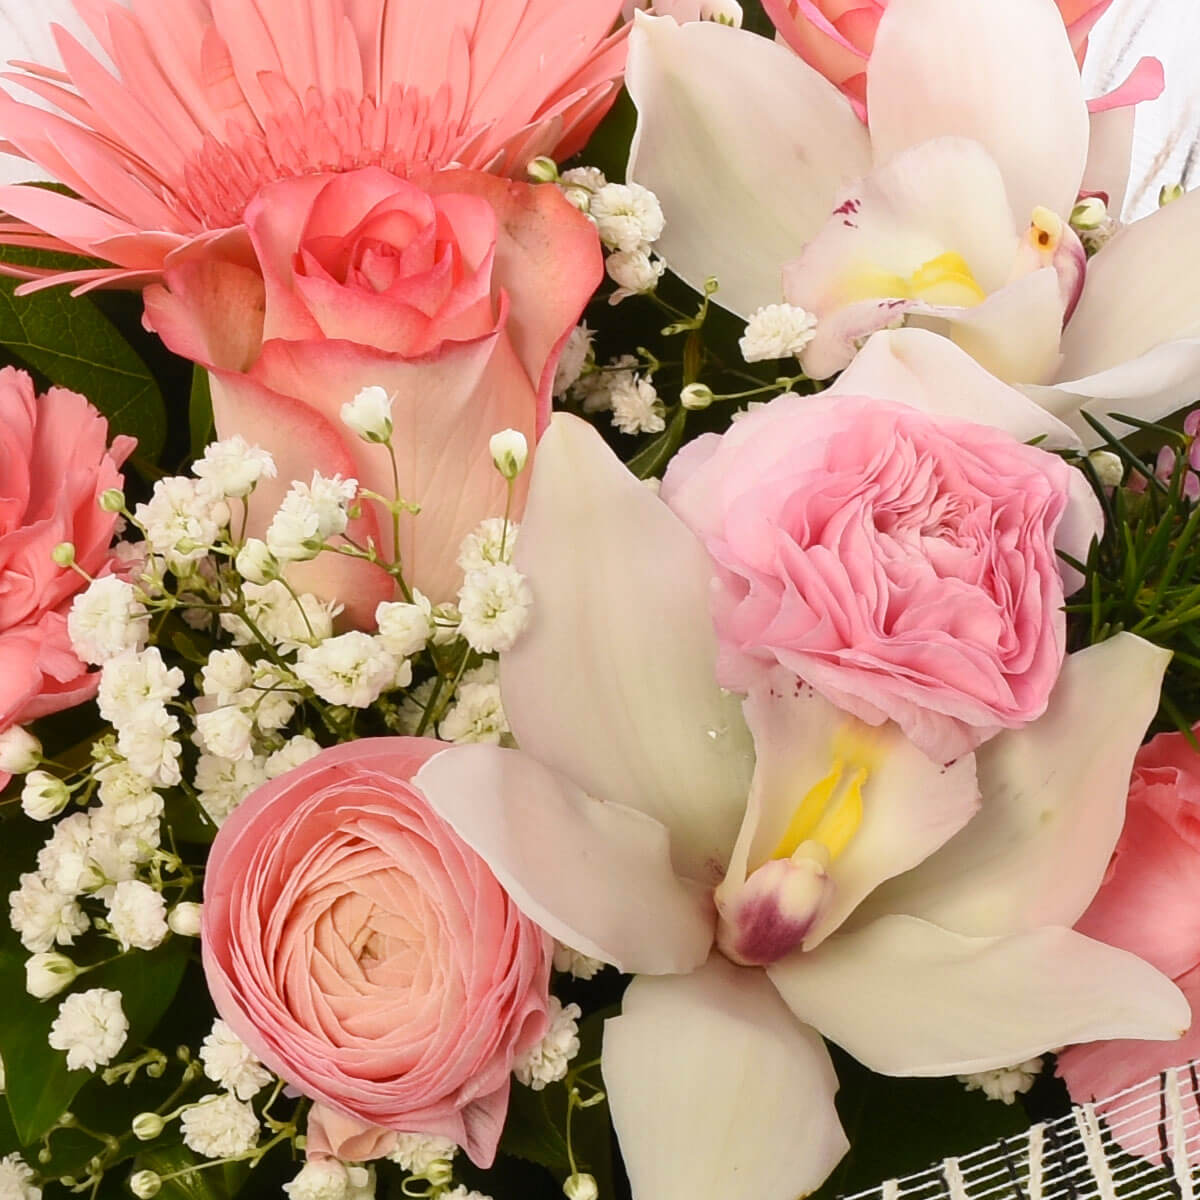 Best hand-tied flower bouquet for Mom | Vancouver BC Local Florist Adele Rae